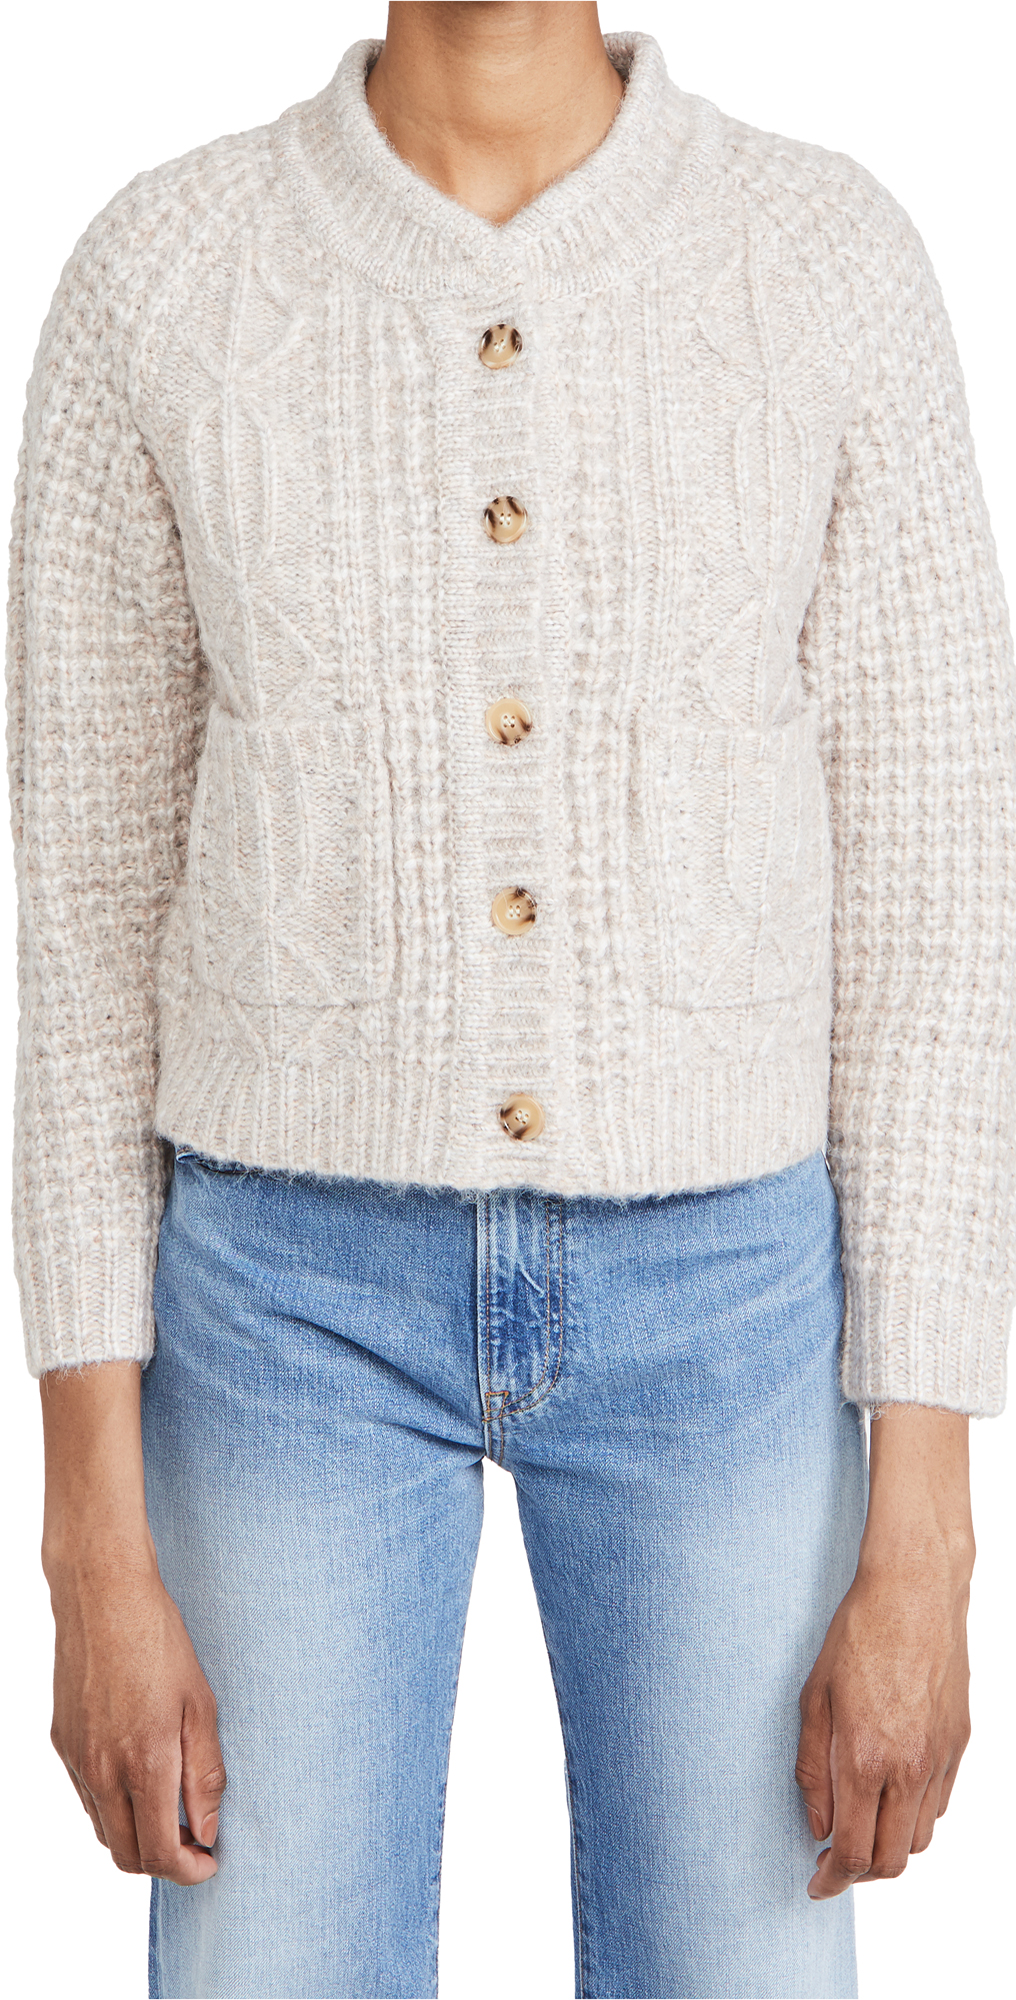 THE GREAT. The Shrunken Cable Cardigan